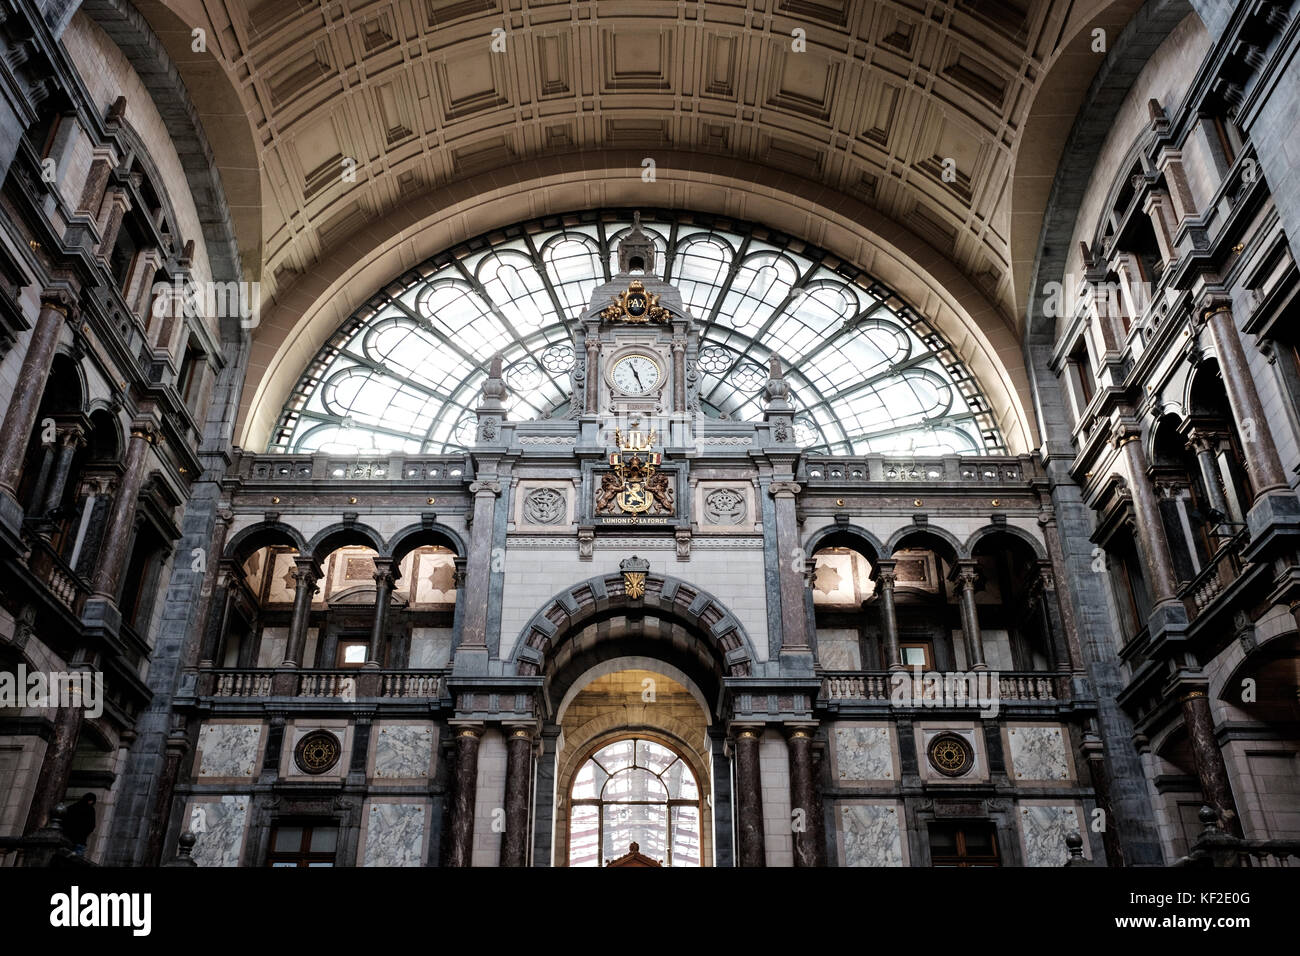 The Interior Of Antwerpen Centraal Railway Station Antwerp Central Stock Photo Alamy